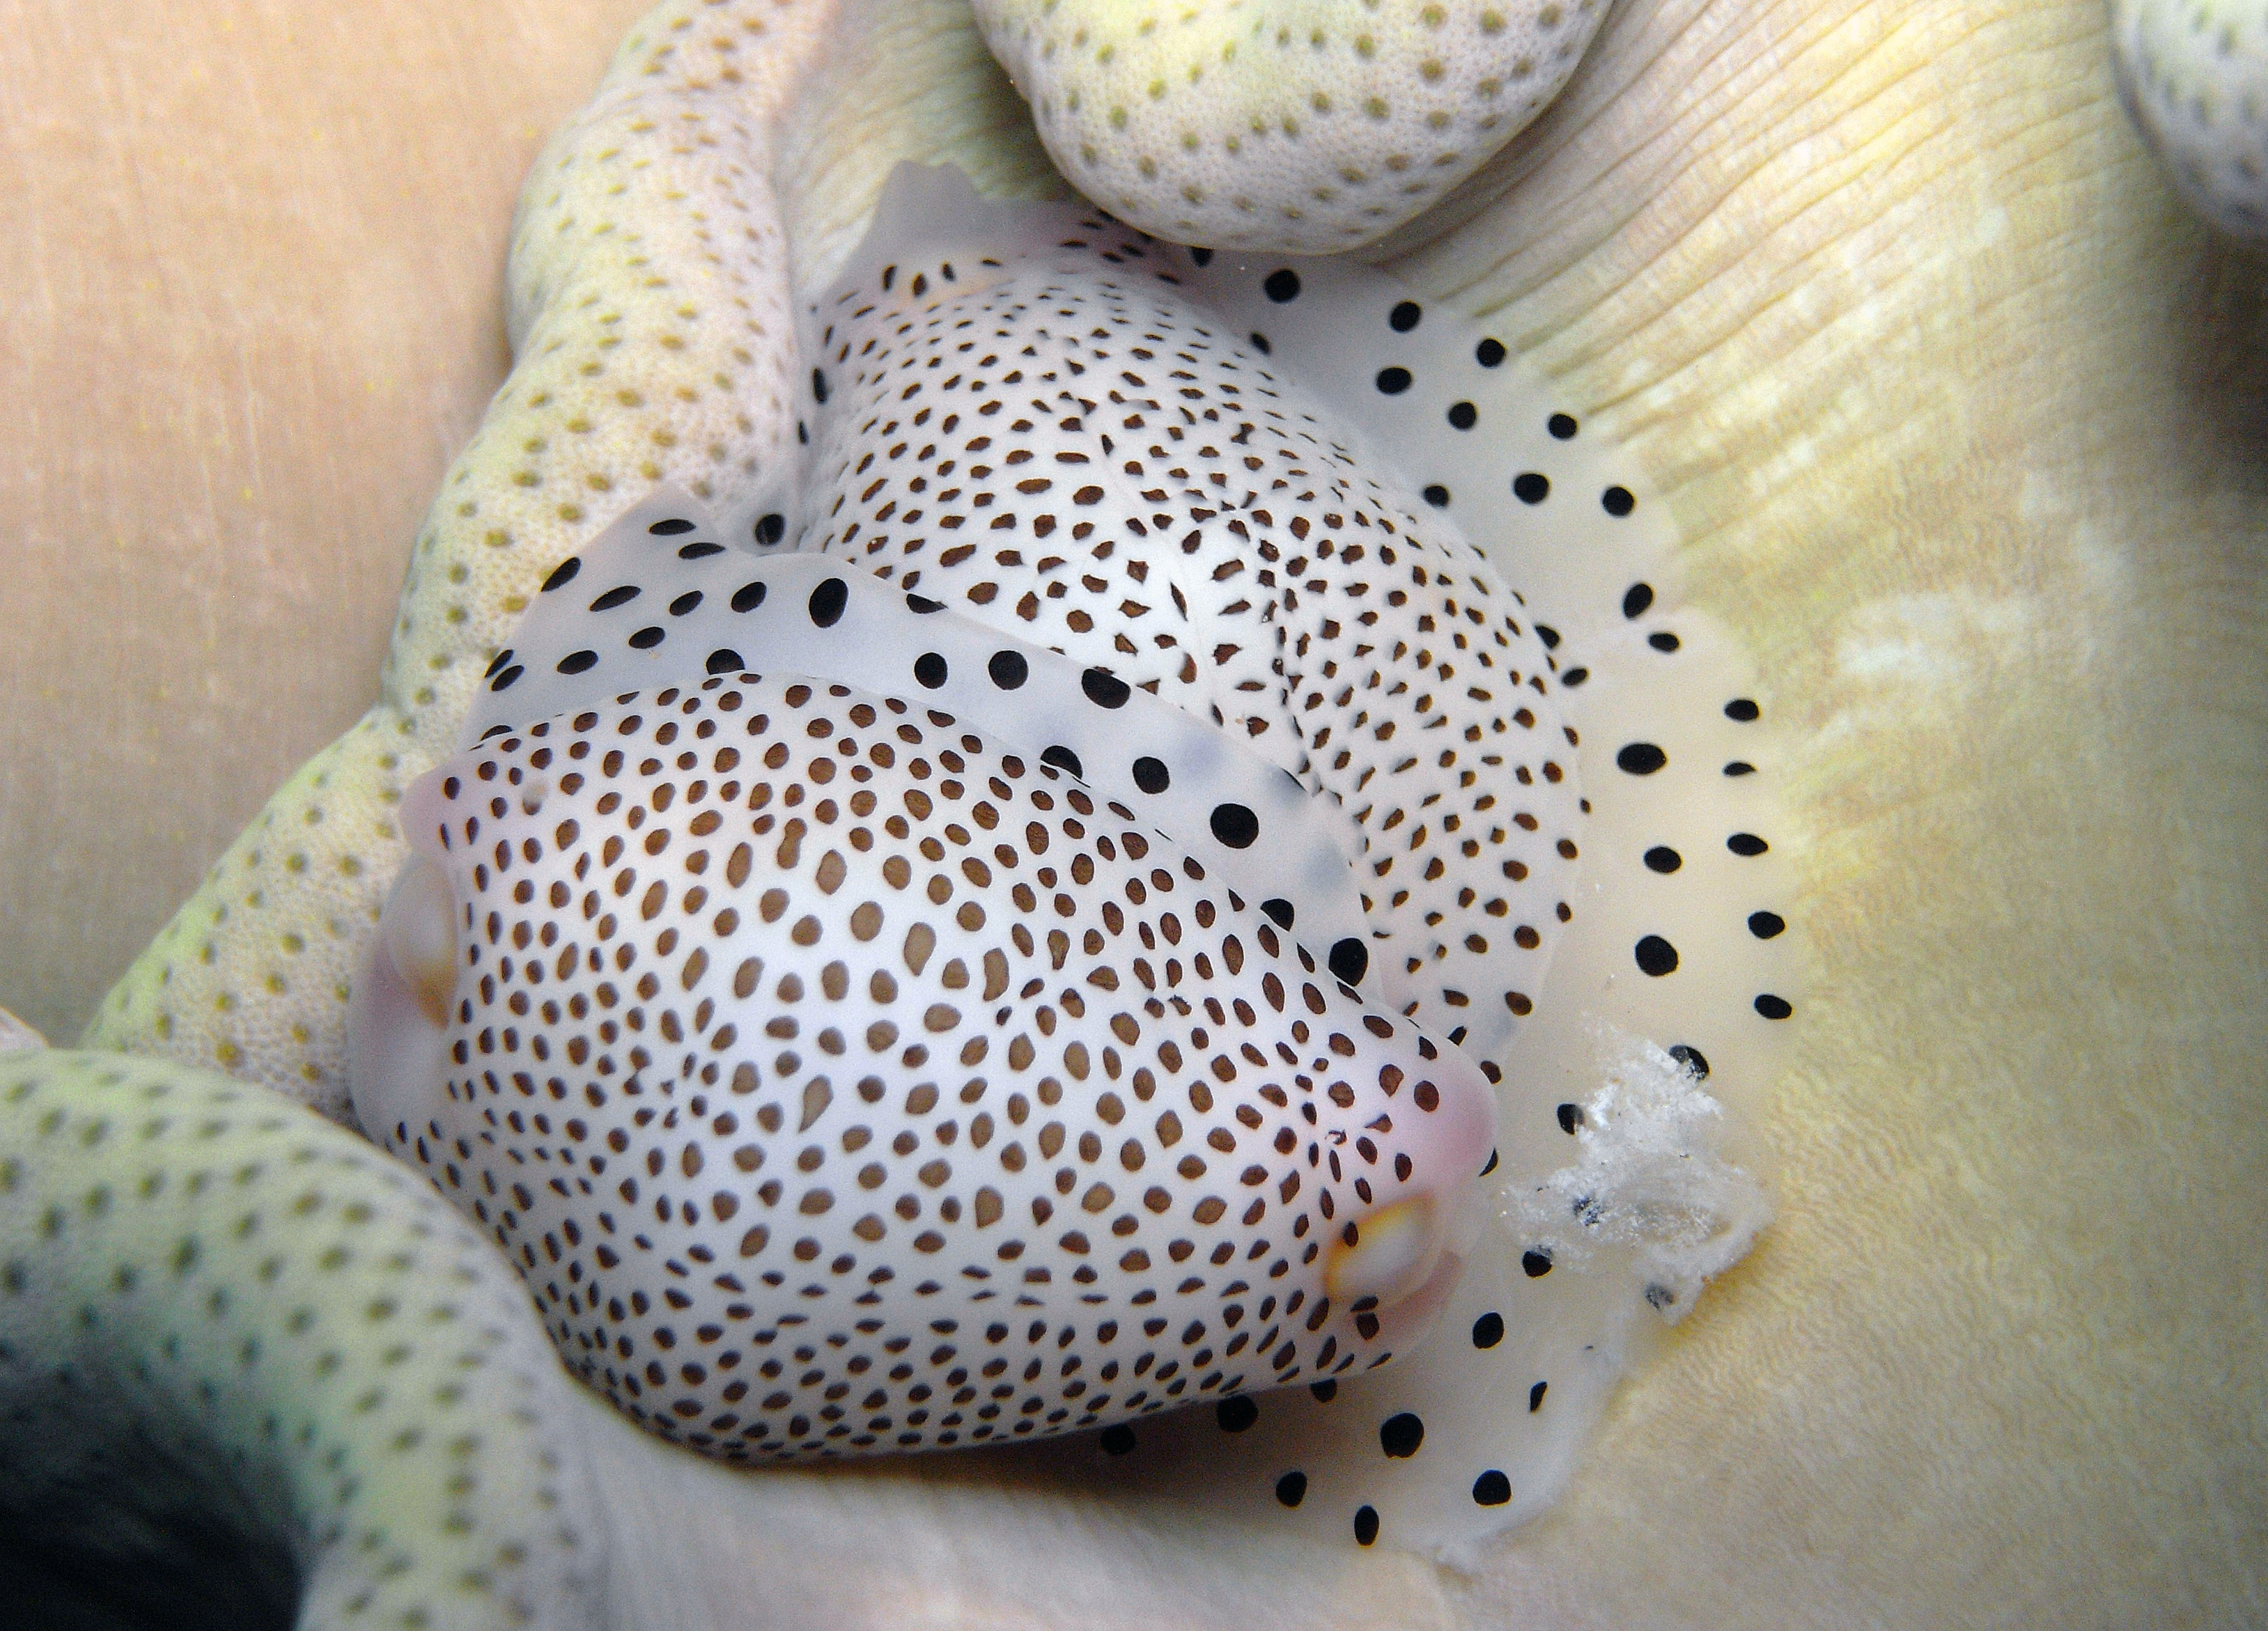 Black-Spotted Egg Cowrie